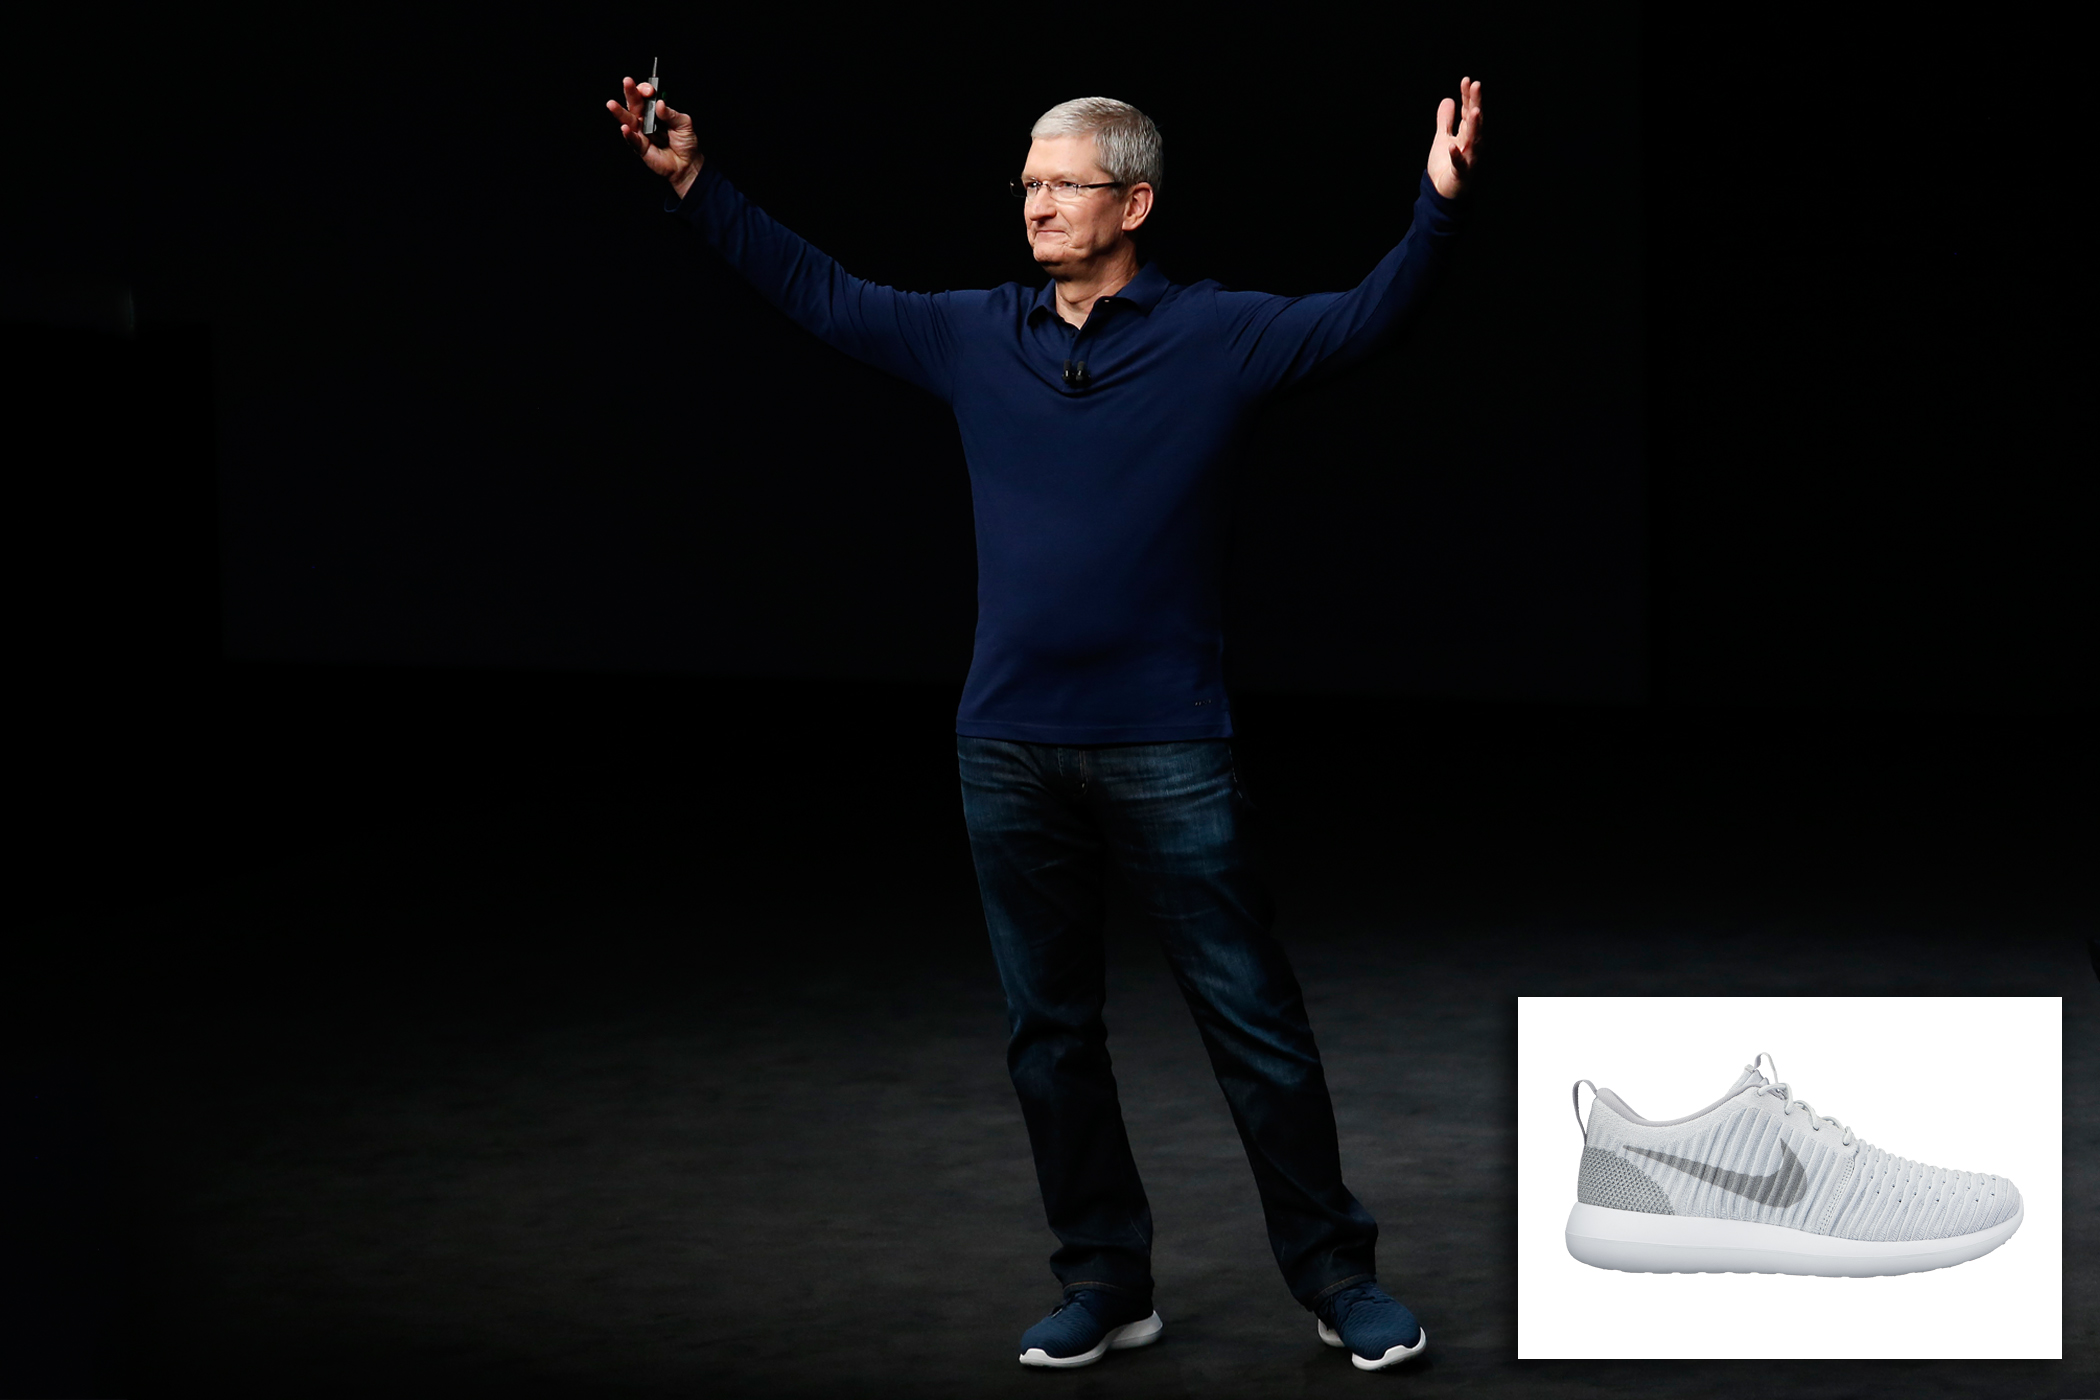 170519-ceos-sneakers-tim-cook2